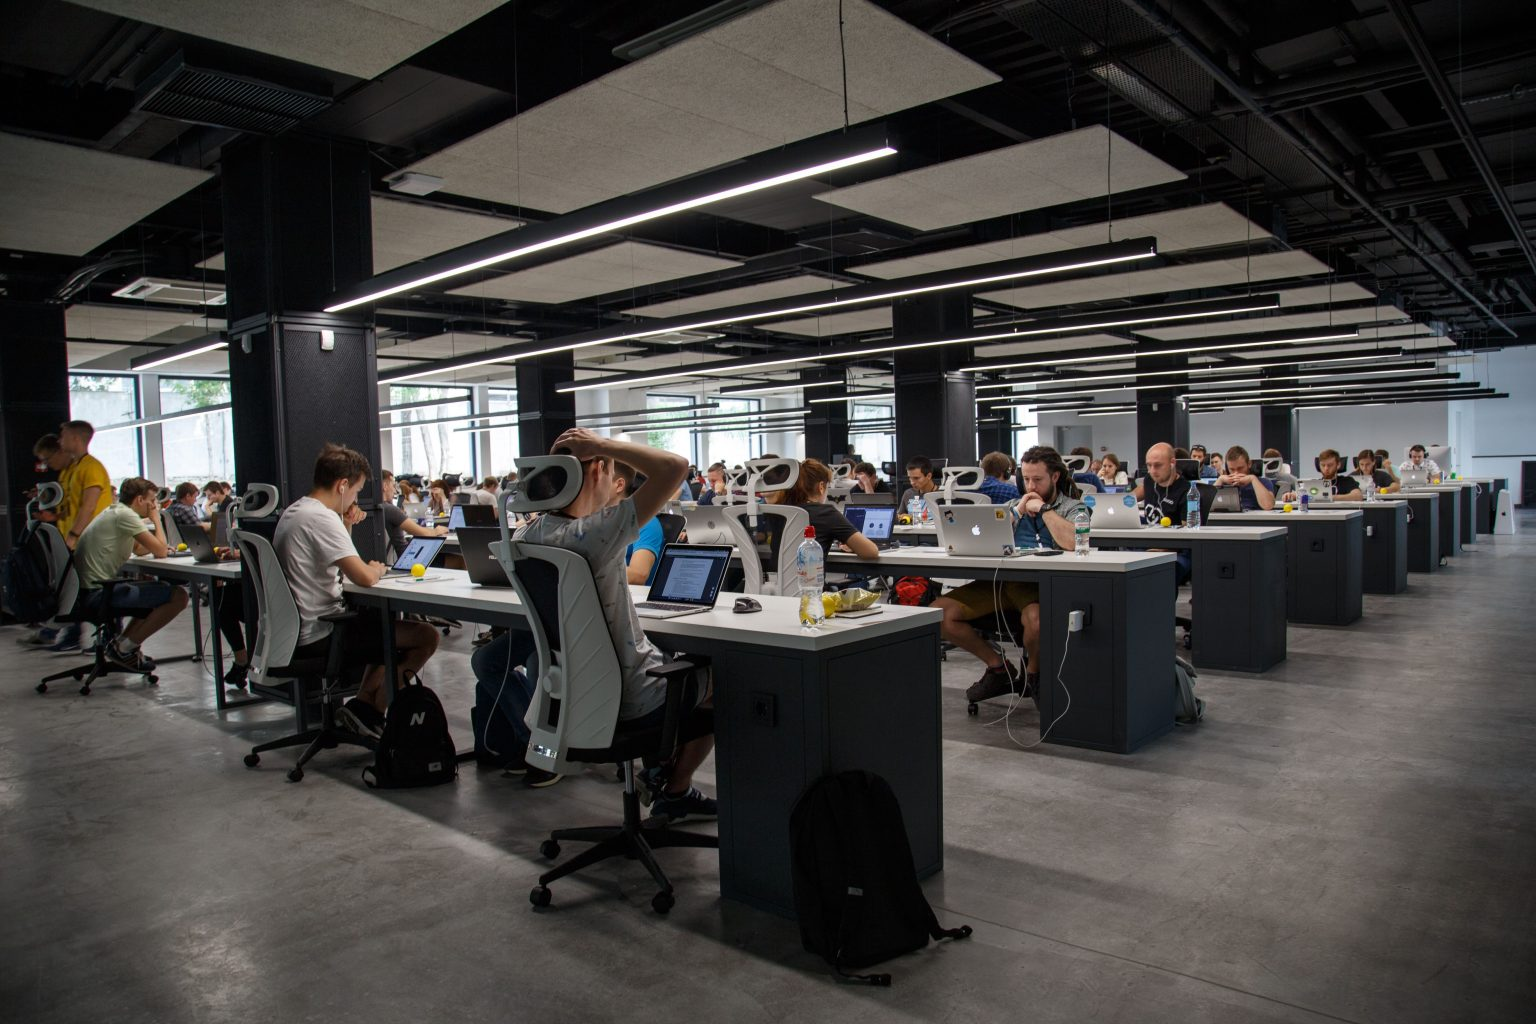 Helppier Blog - How to increase productivity in the workplace - Open Floor Plan